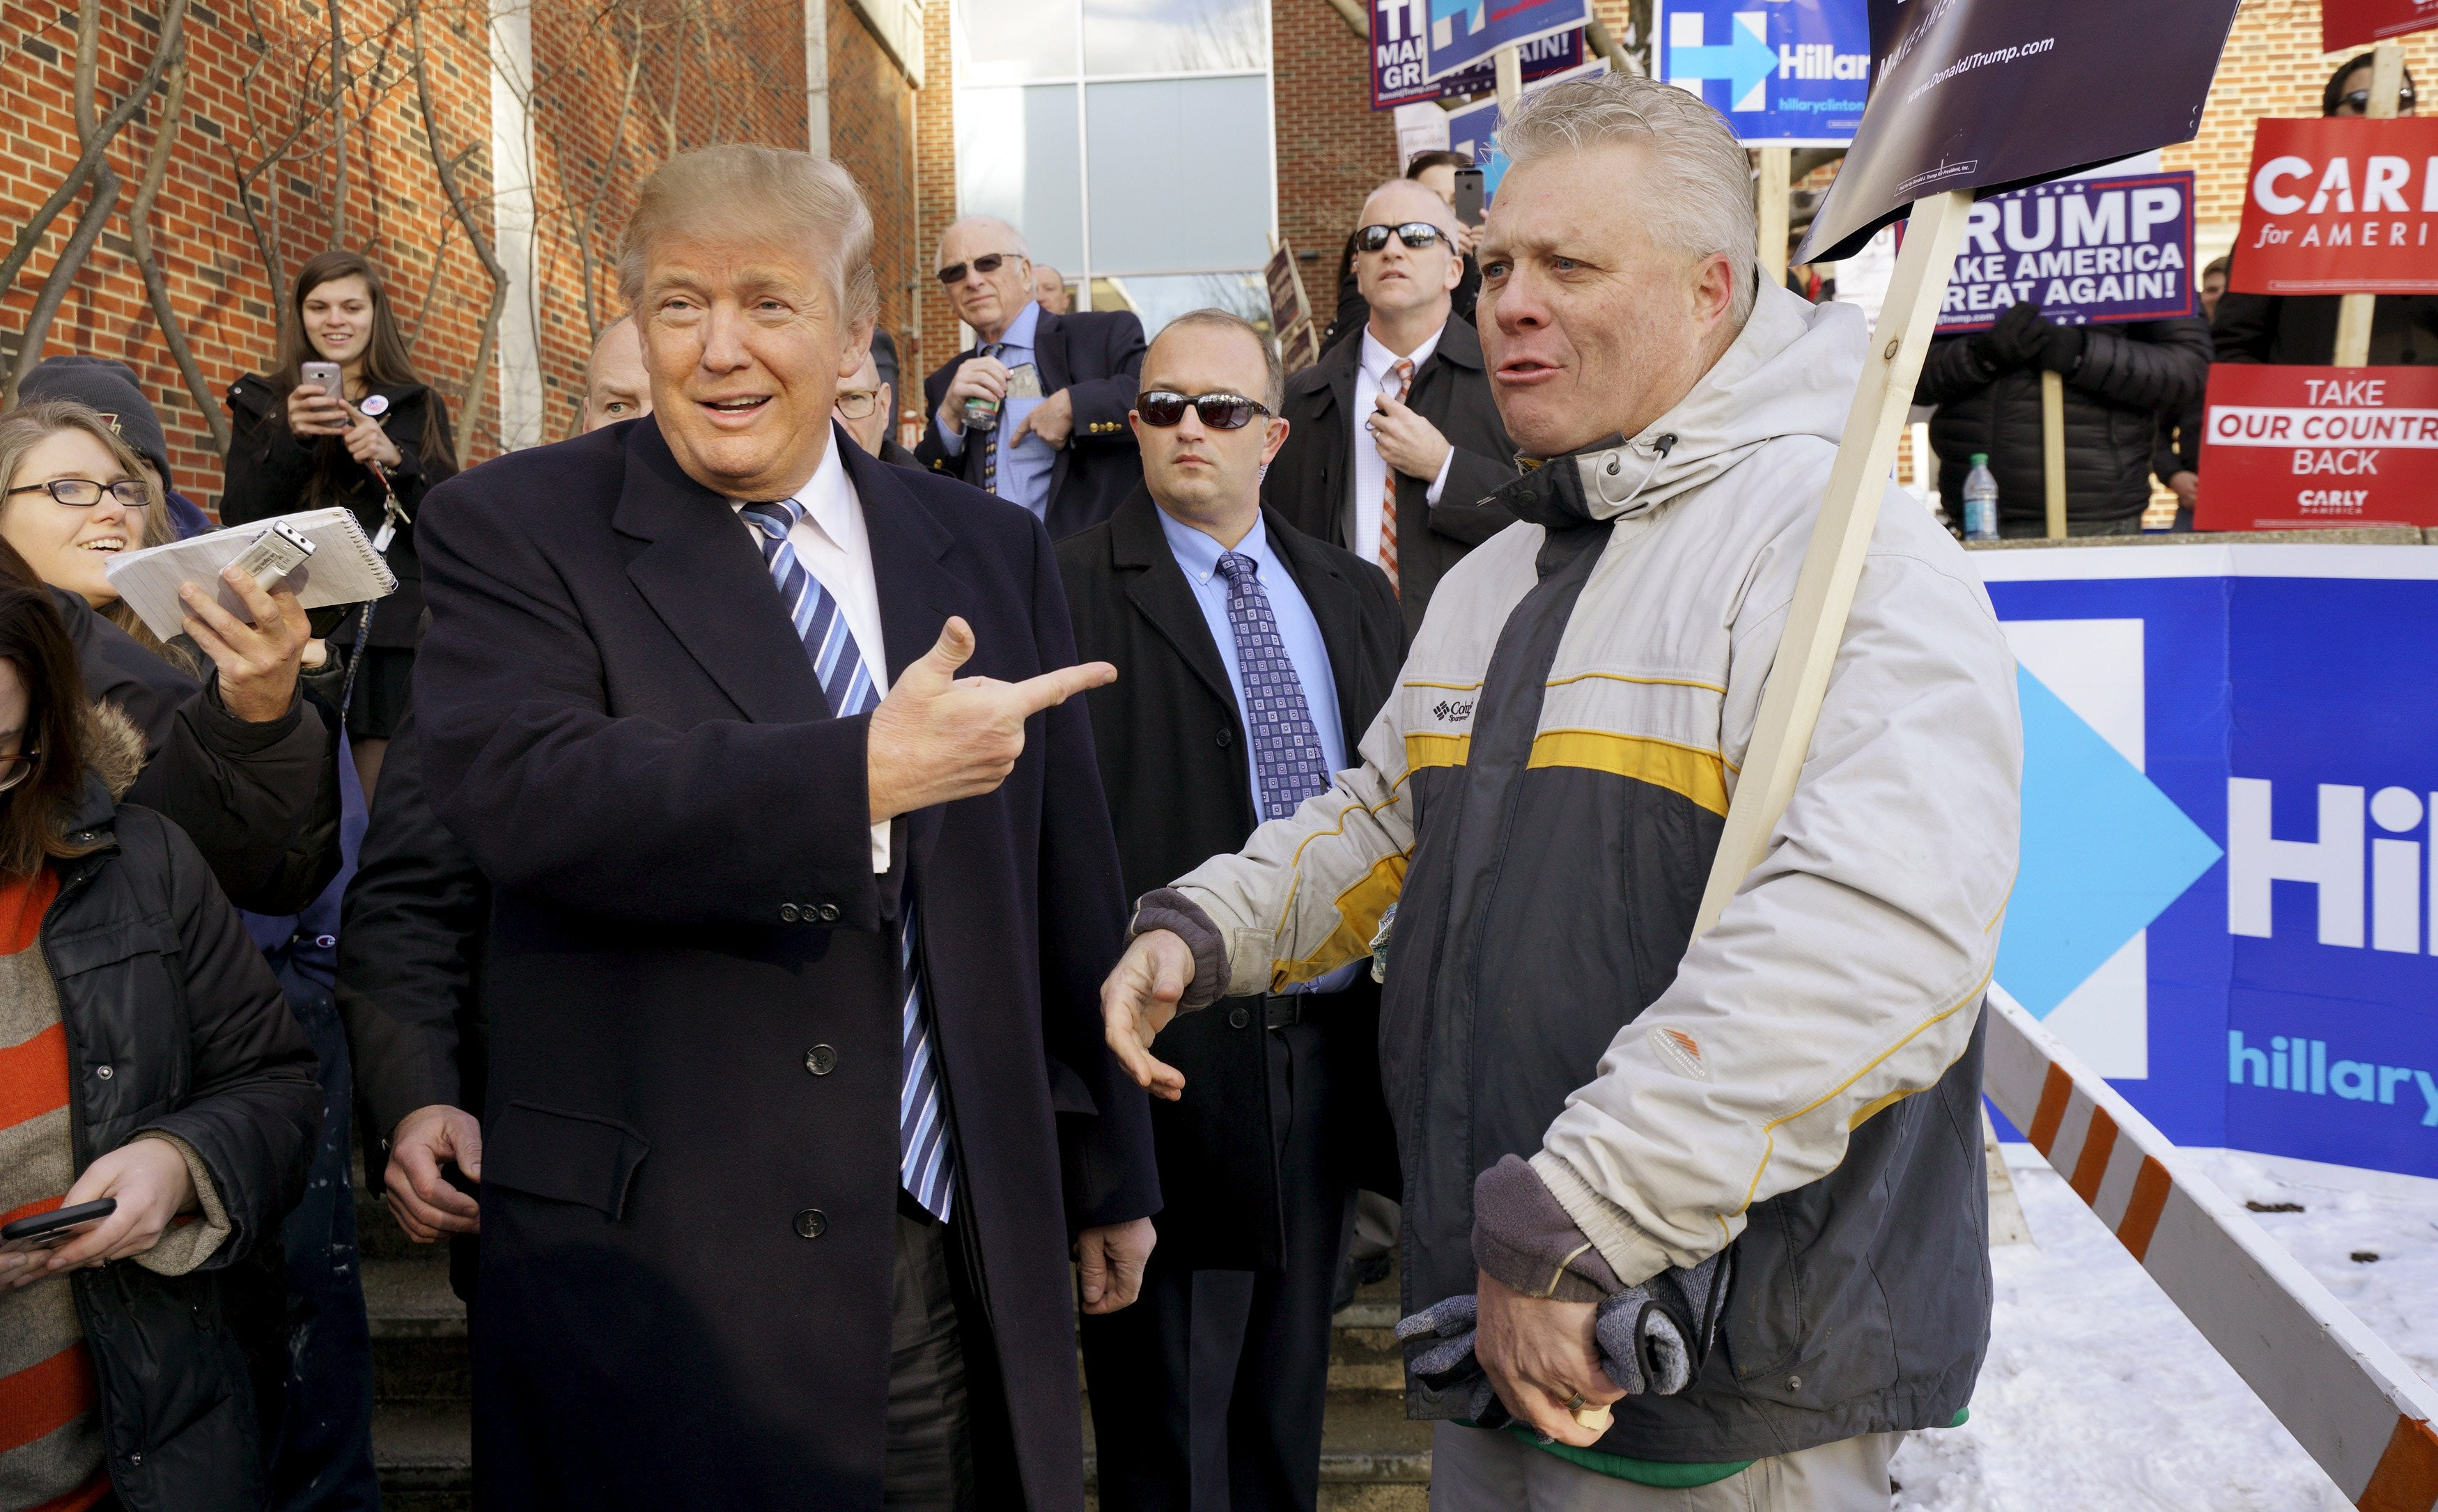 Republican presidential candidate Donald Trump points at a supporter at a polling place for the presidential primary in Manchester, New Hampshire.